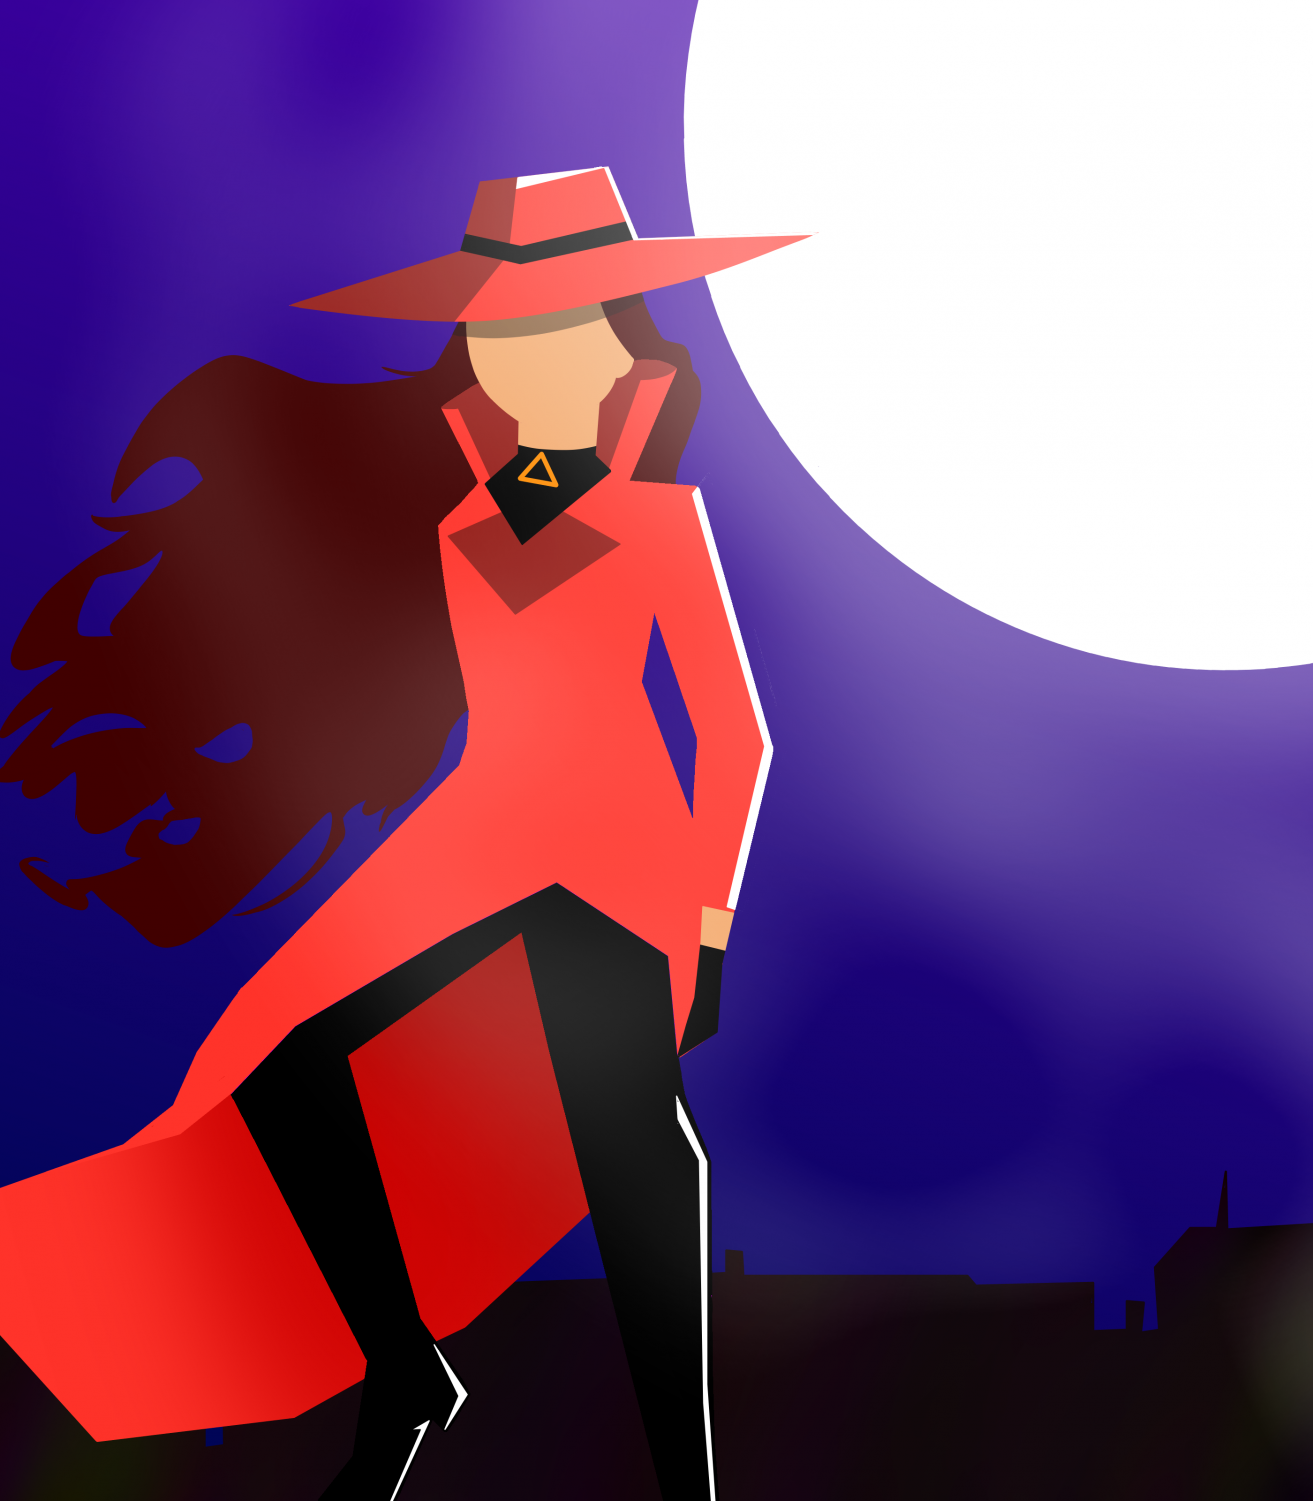 What In The World Is Carmen Sandiego?